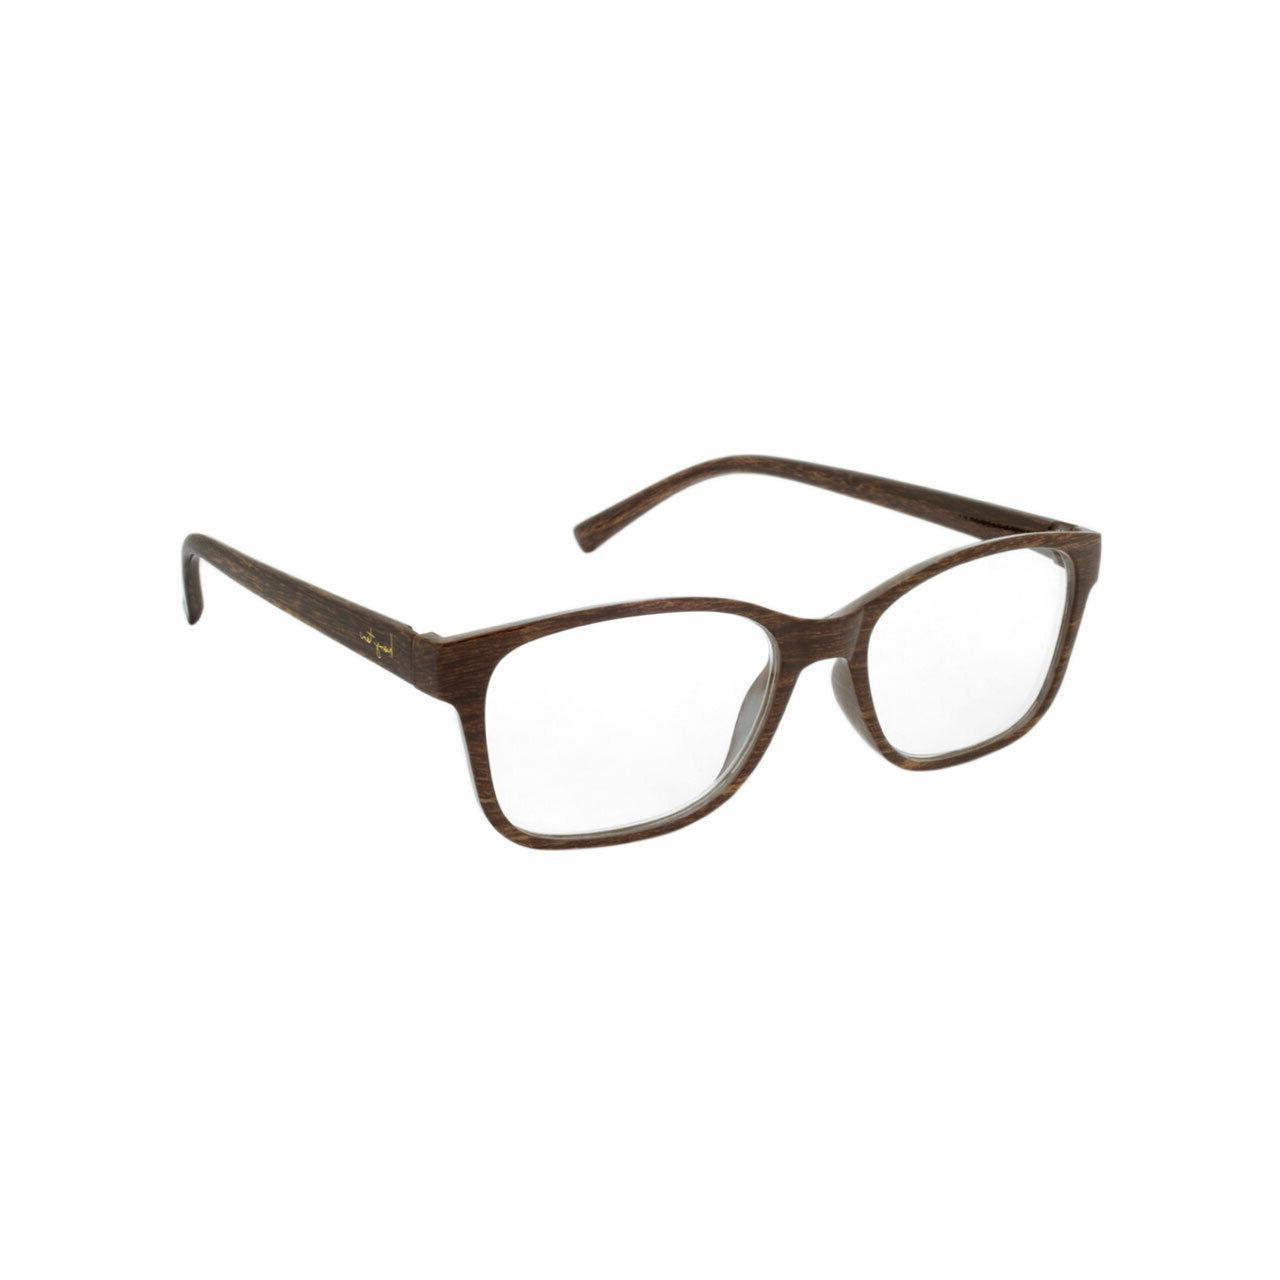 READING GLASSES MENS 4 UNISEX QUALITY STYLE NEW